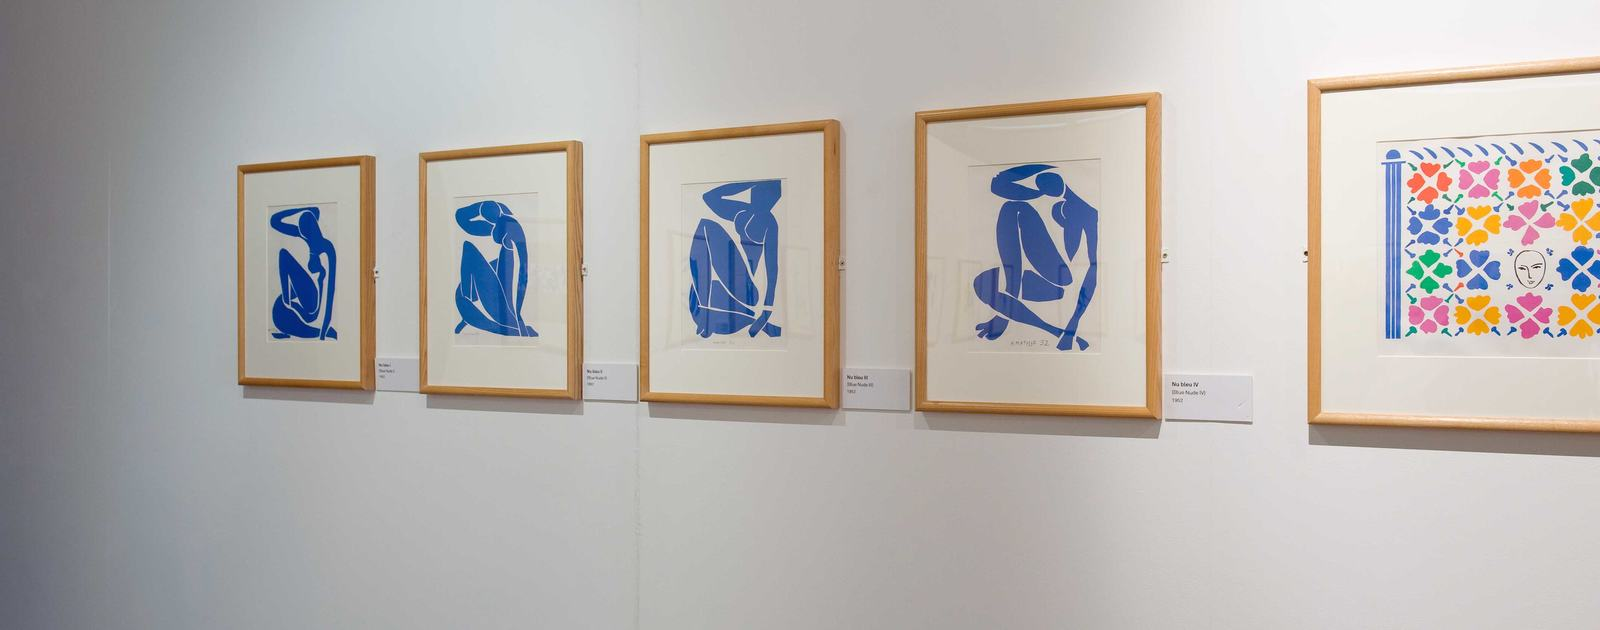 Installation View of MATISSE: DRAWING WITH SCISSORS Late Works 1950 - 1954 Credit Colin DAvison